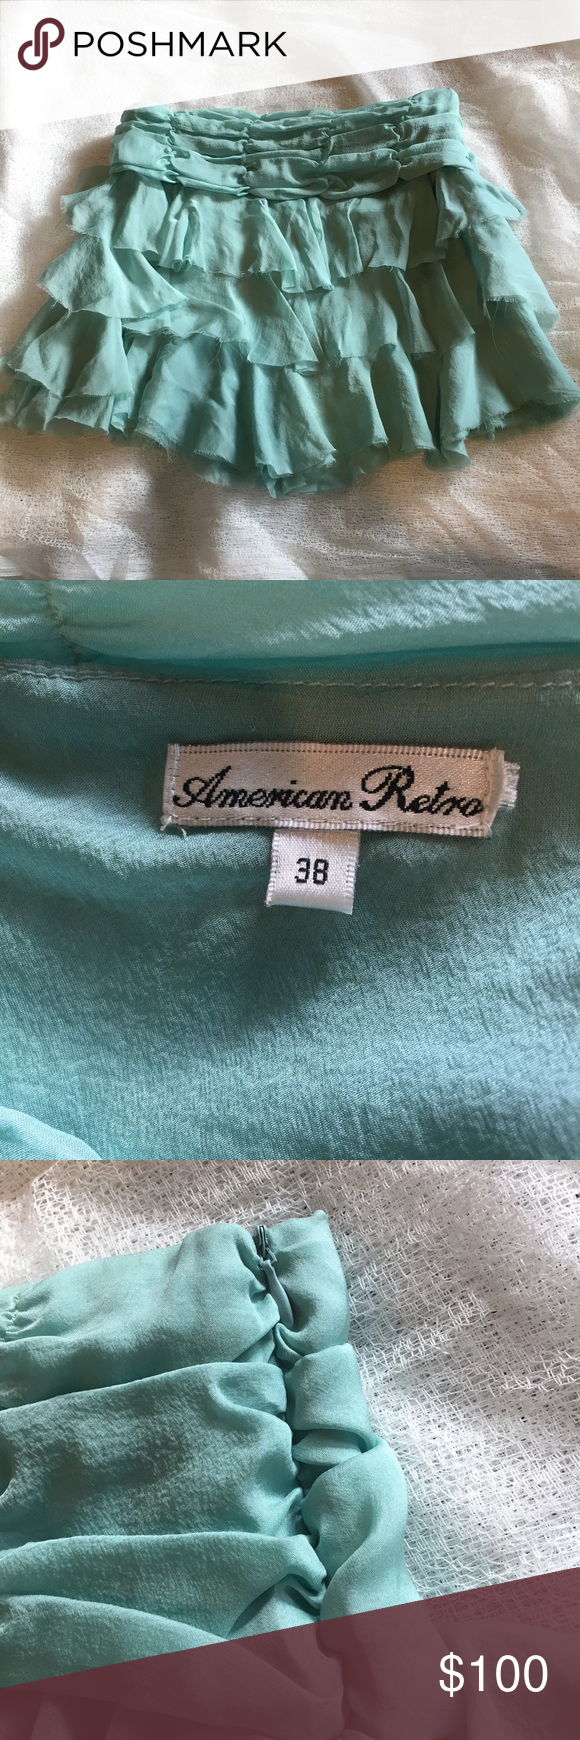 "RARE America Retro Silk Tiered Skirt Très chic! Super rare American Retro seafoam aqua skirt is 100% silk. Features a ruched waistband, three tiers of beautiful unfinished-hem ruffles, & a tonal side zipper. Bottom tier is two layers (see pic). American Retro was an über chic French brand. French size 38 translates to American size 4 or 6. Skirt is 31.75"" around at the waistband and approximately 15"" at center front. There are a couple small spots on the waistband that can't be captured in…"